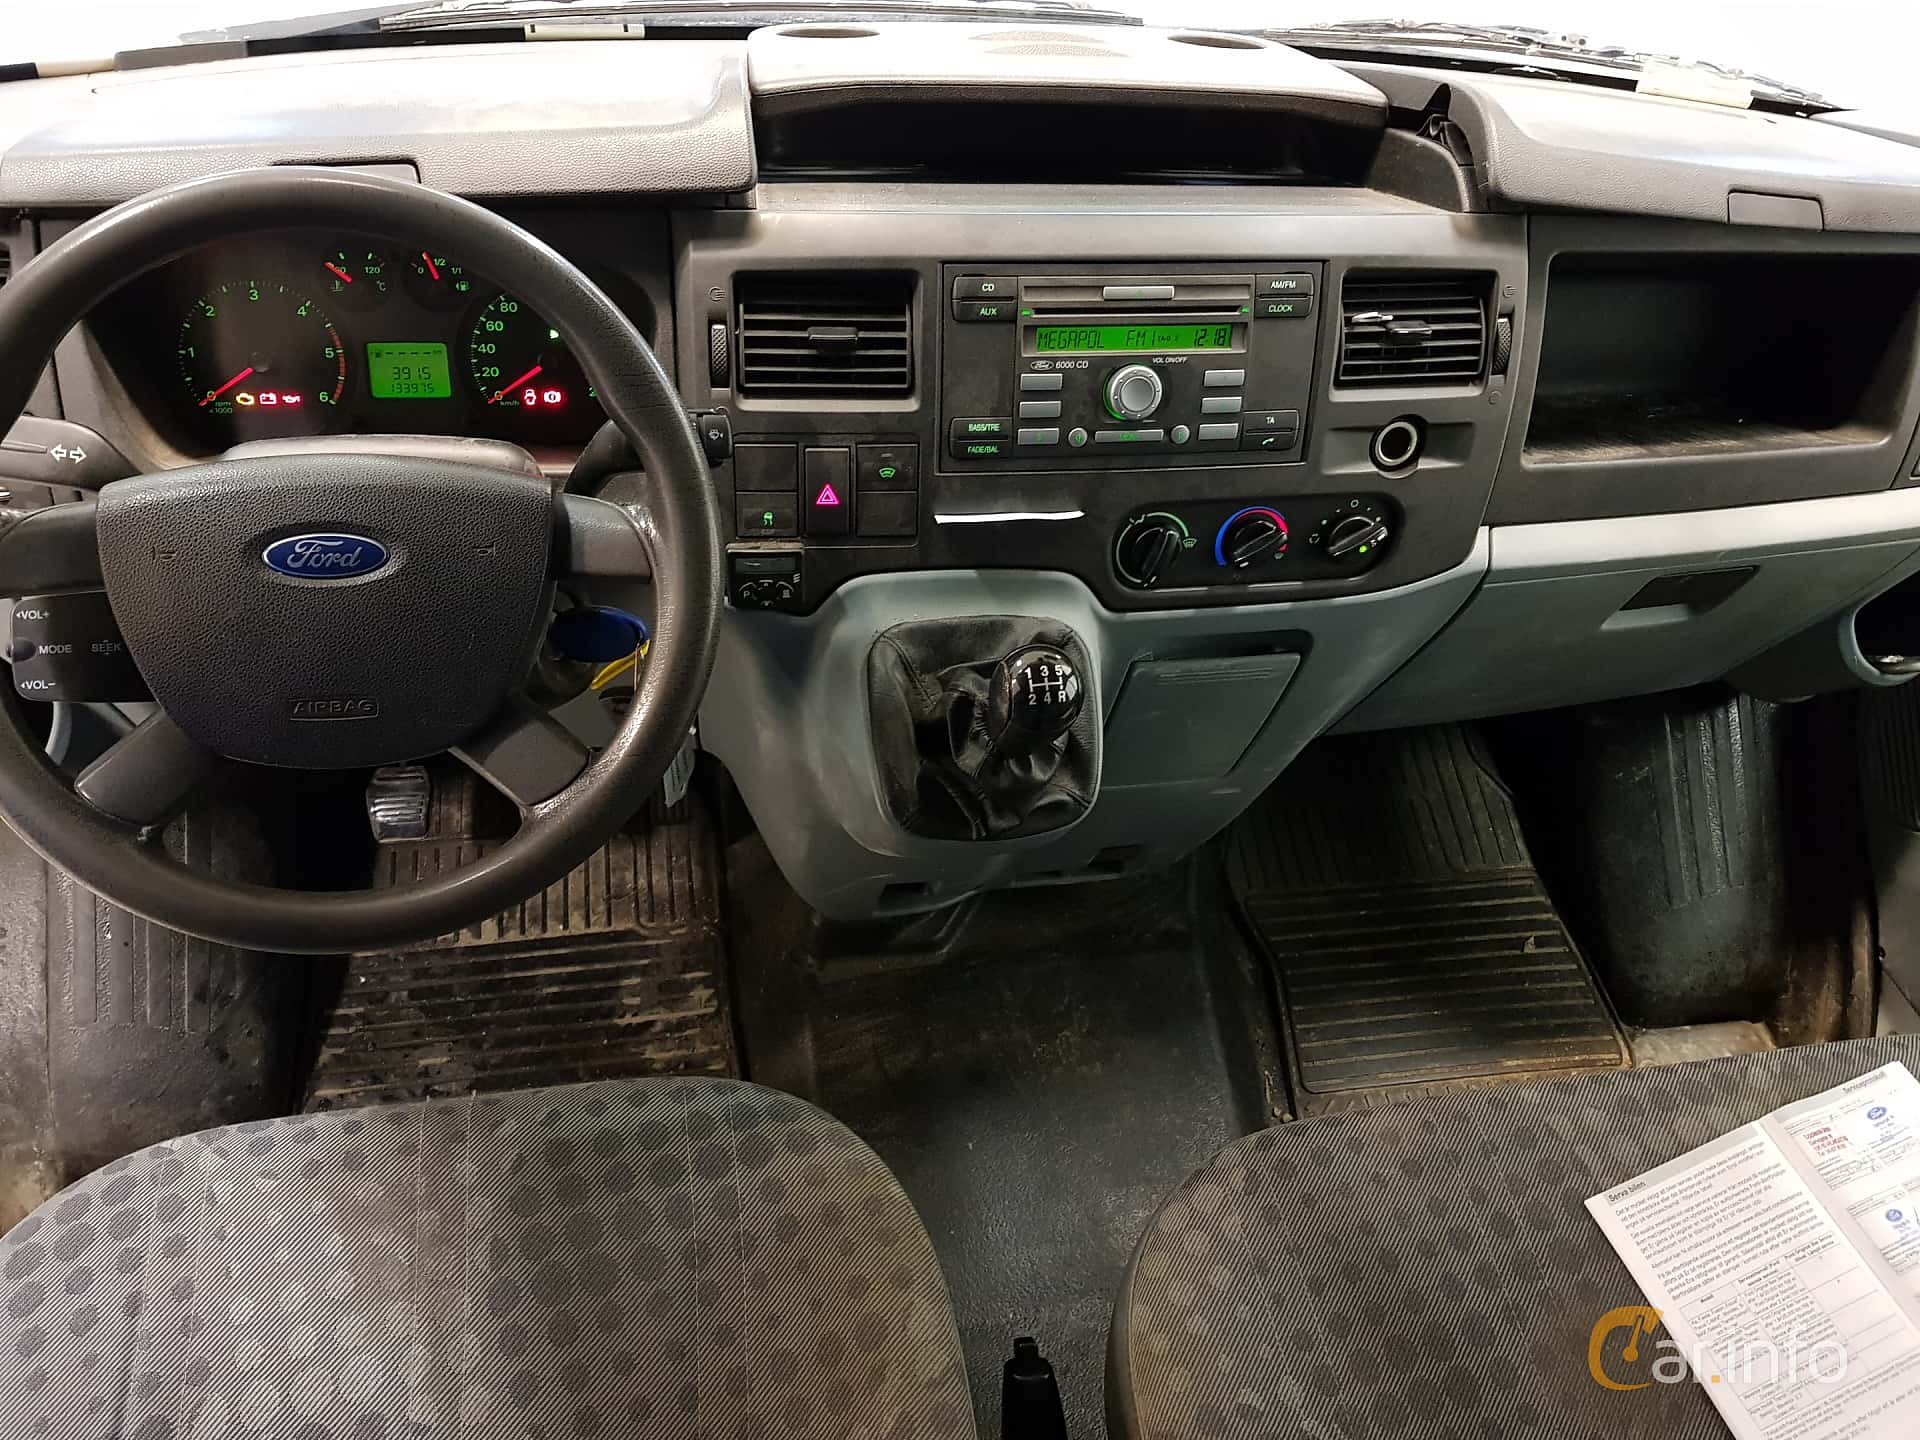 Ford Transit Van 2 2 TDCi Manual, 85hp, 2008